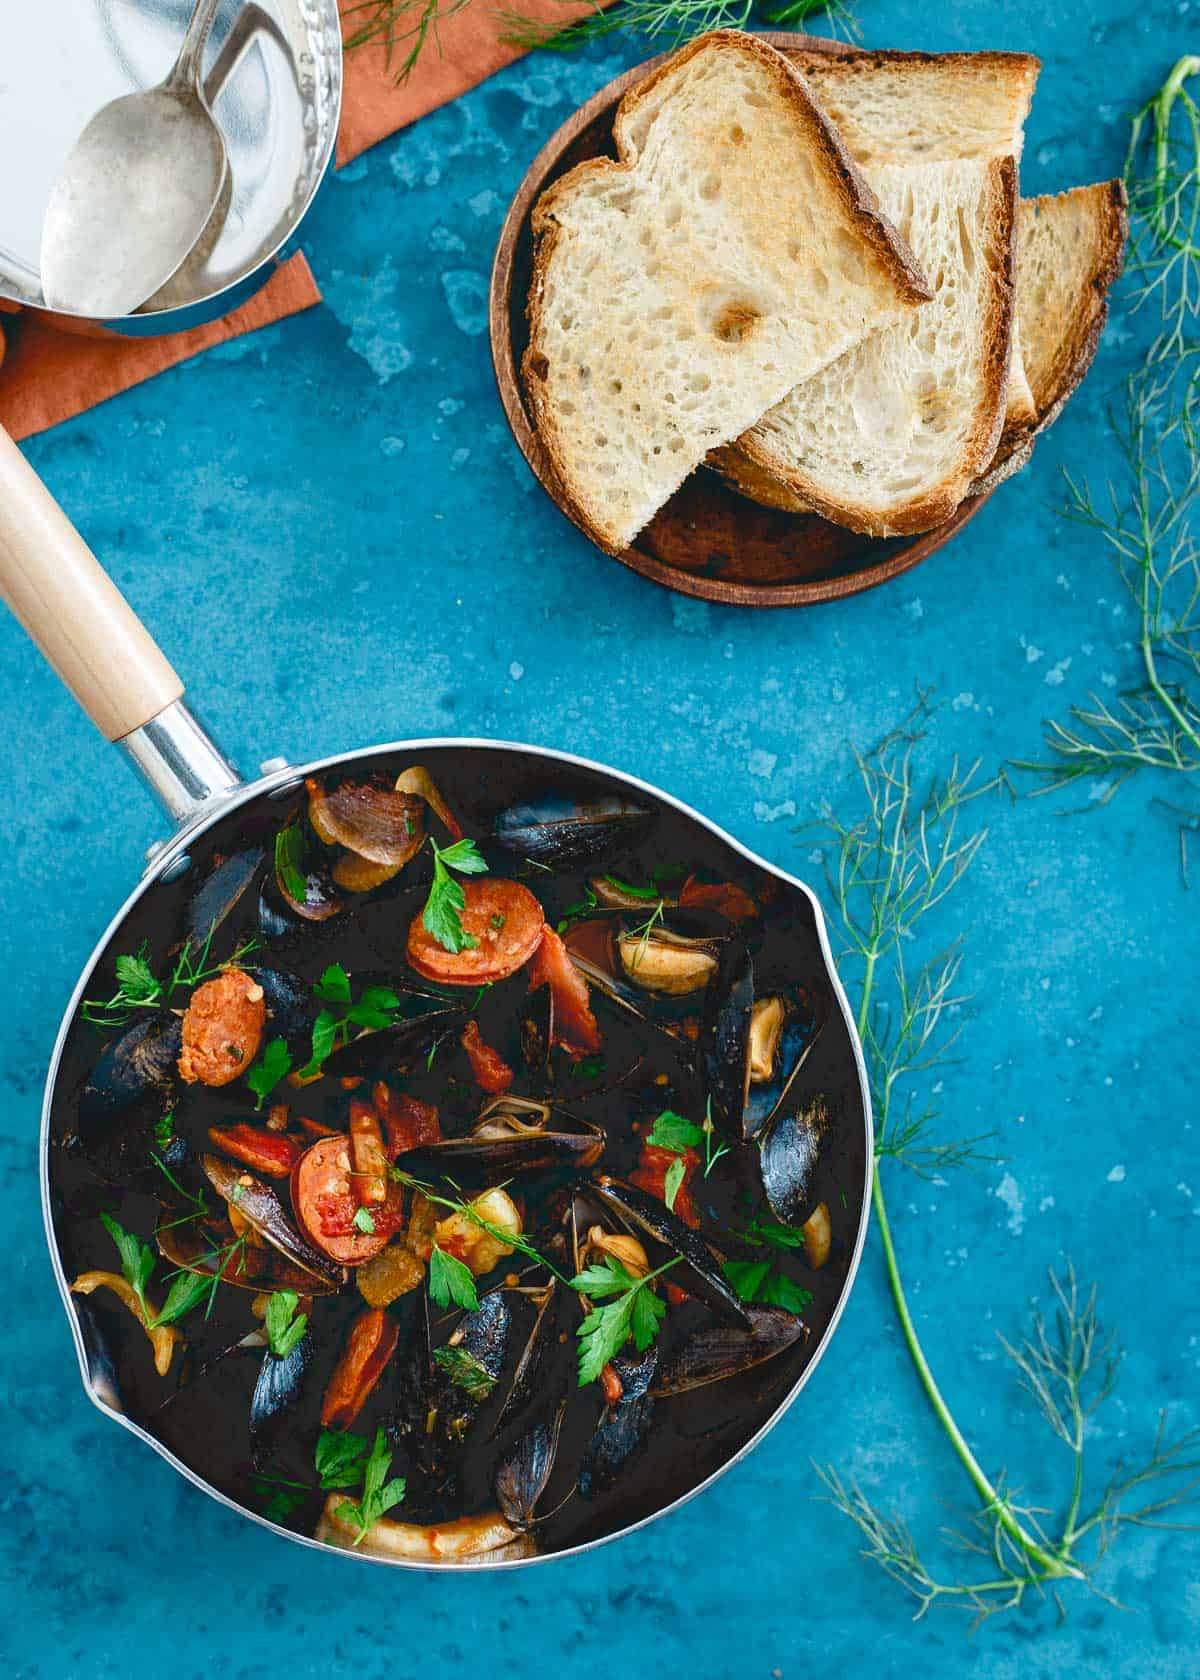 Chorizo chili mussels with fennel and tomatoes is an easy weeknight meal made in one pot in just 20 minutes.